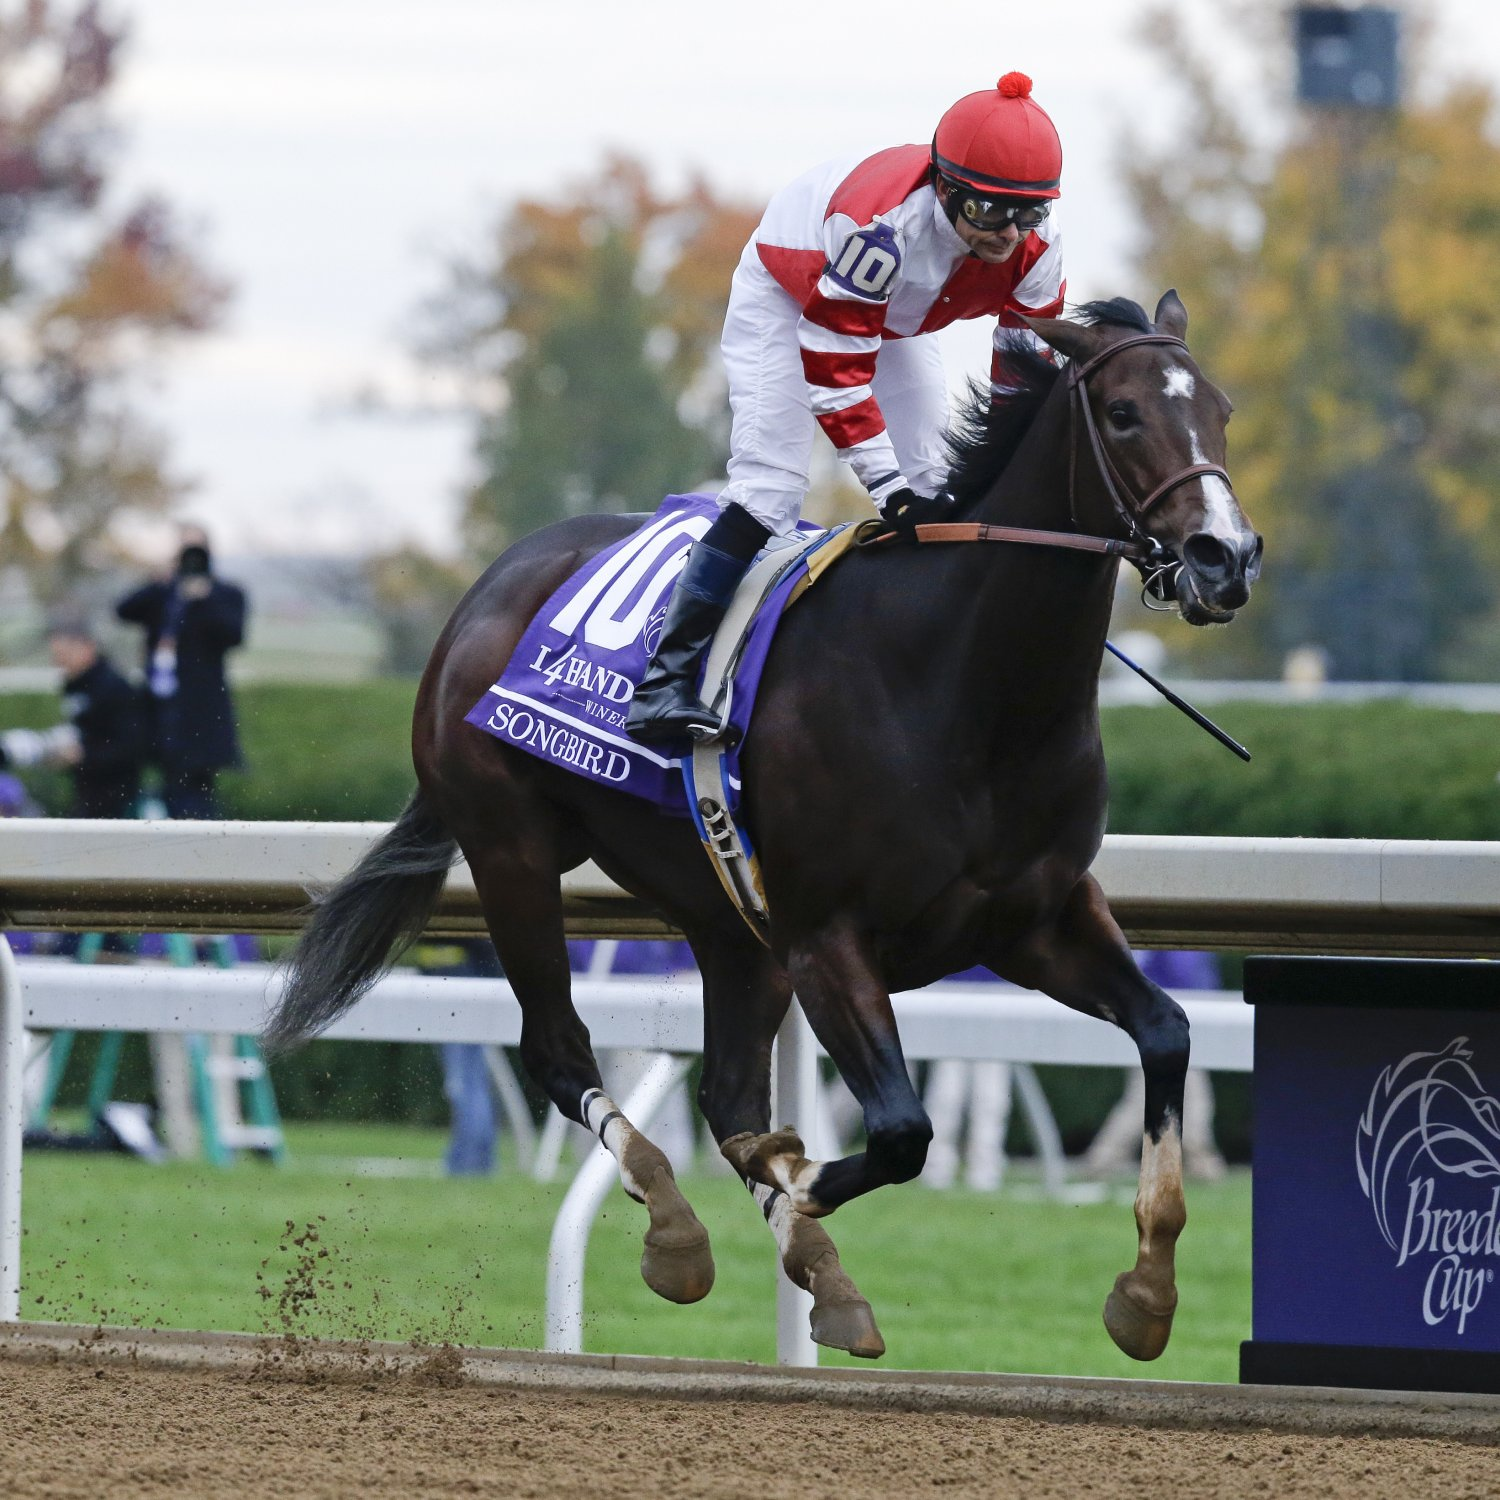 Breeders Cup 2015 Results Tracking Winners And Prize